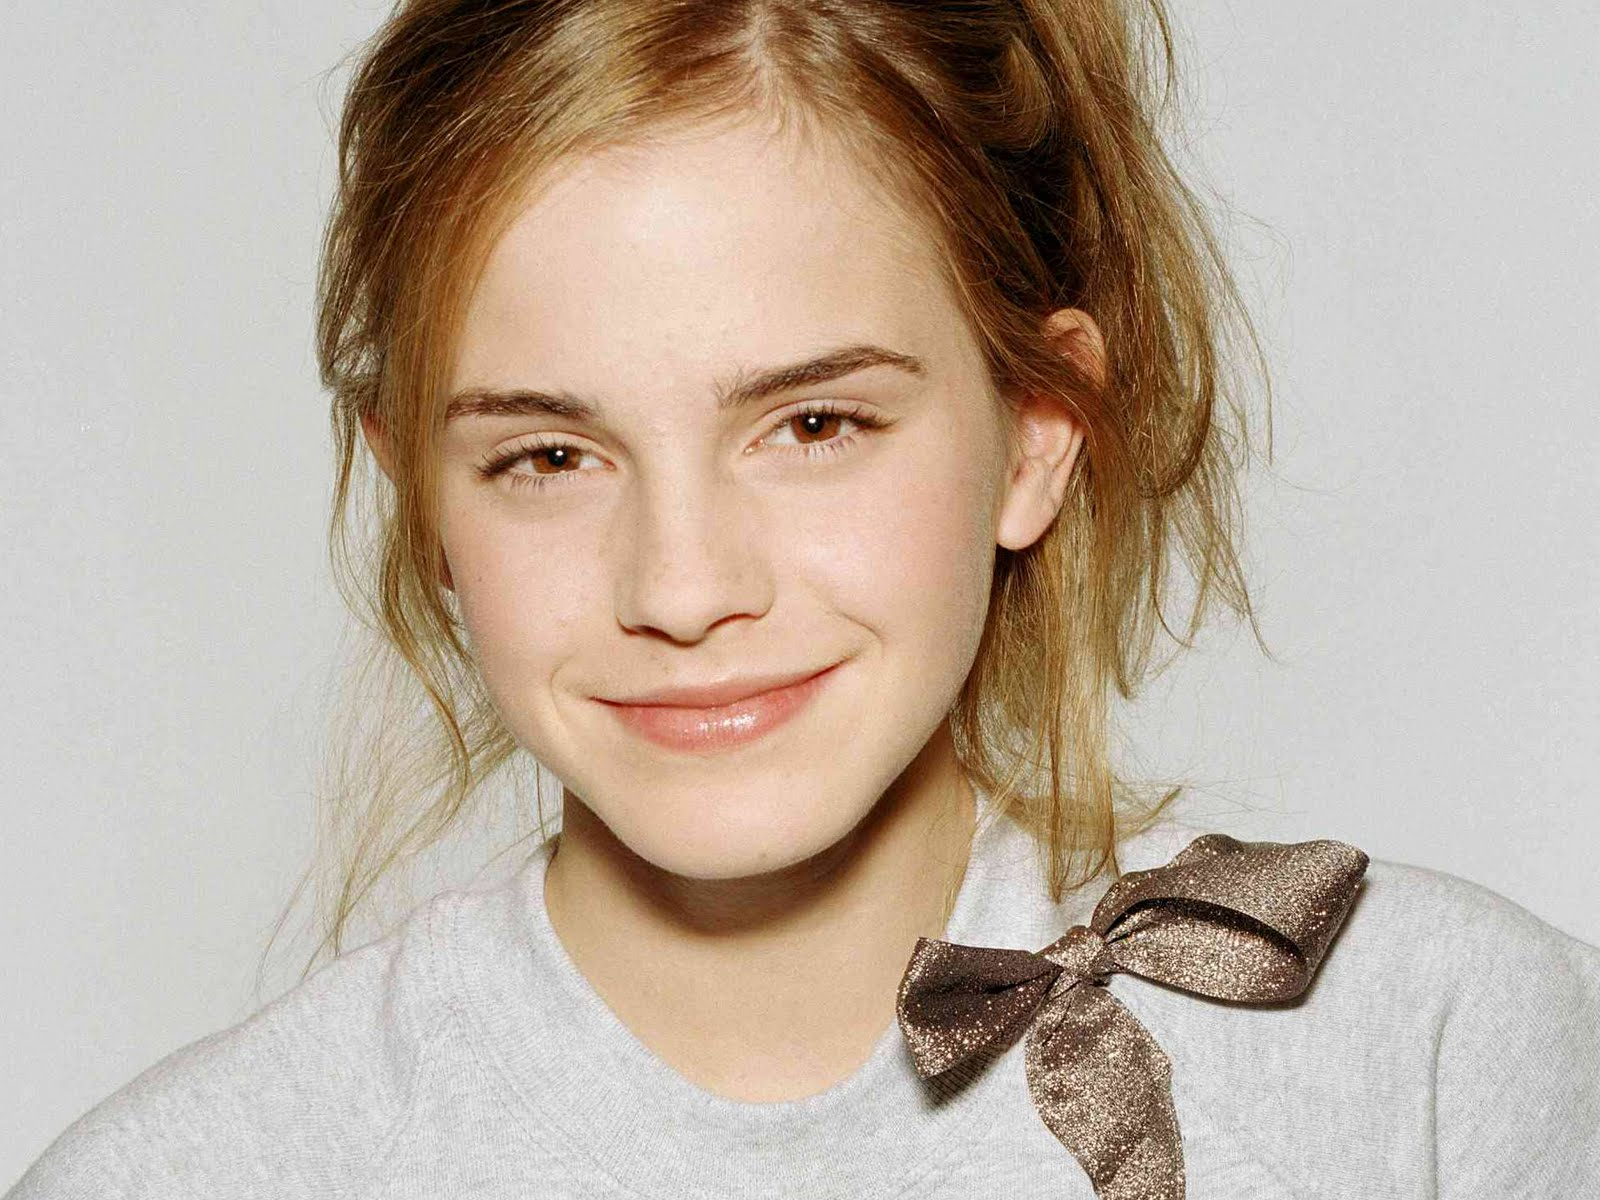 http://1.bp.blogspot.com/-rvJGnSCDs1A/Tt_Mp-8B6gI/AAAAAAAADIs/wedMahQklU4/s1600/Girl+Hairstyle%252C+Photo+Gallery%252C+Emma+Watson+Hairstyles%252C+Celebrity+Emma+Watson+Hairstyles%252C+Emma+Watson+Hairstyles+Photo%252C+Latest+Emma+Watson+Hairstyles%252C+Emma+Watson+Hairstyles+Cutting+%252846%2529.jpg